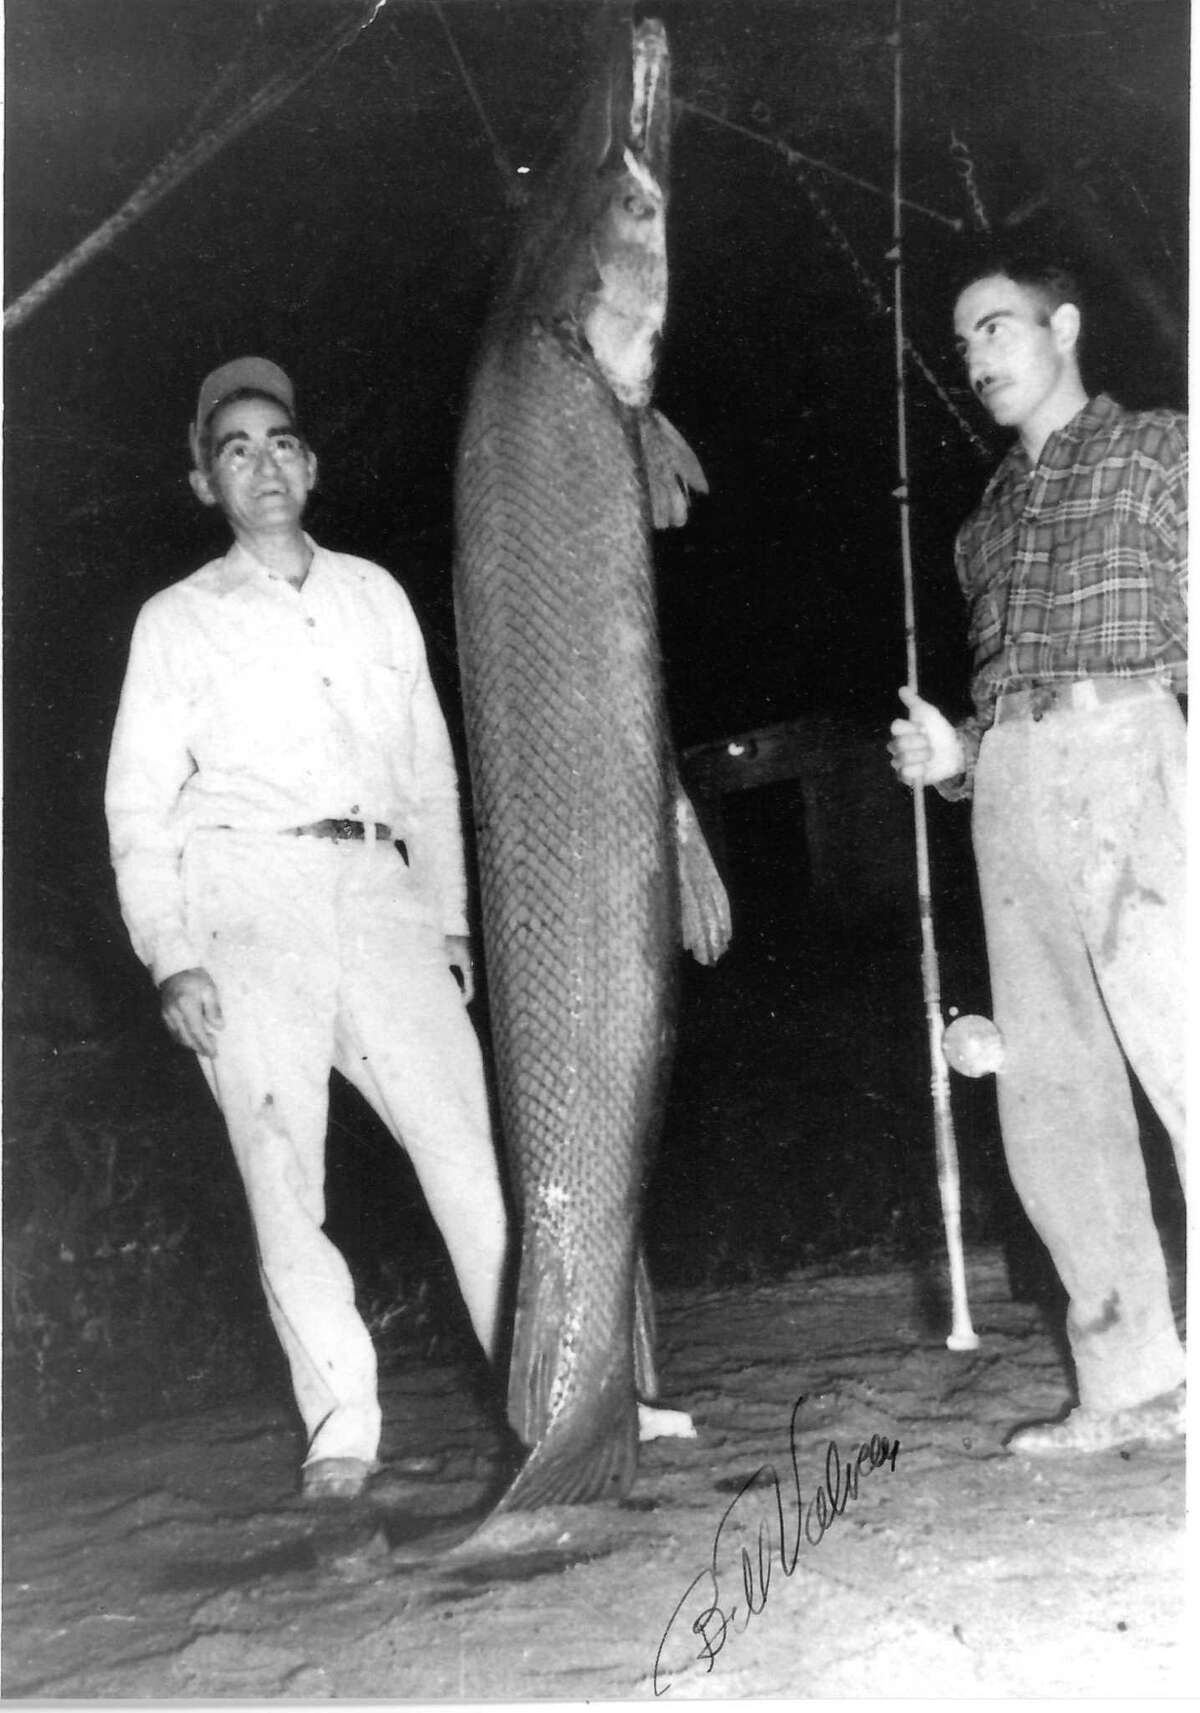 Bill Valverde, holding rod-and-reel, and his father Trinidad Valverde stand next to the 279-pound alligator gar Valverde caught from the Rio Grande in 1951. The 7-foot, 9-inch gar is the heaviest freshwater fish documented taken on rod-and-reel in Texas, the longest-standing Texas freshwater fish record and holds the world record for rod-and-reel-caught alligator gar, the second largest freshwater fish in North America.